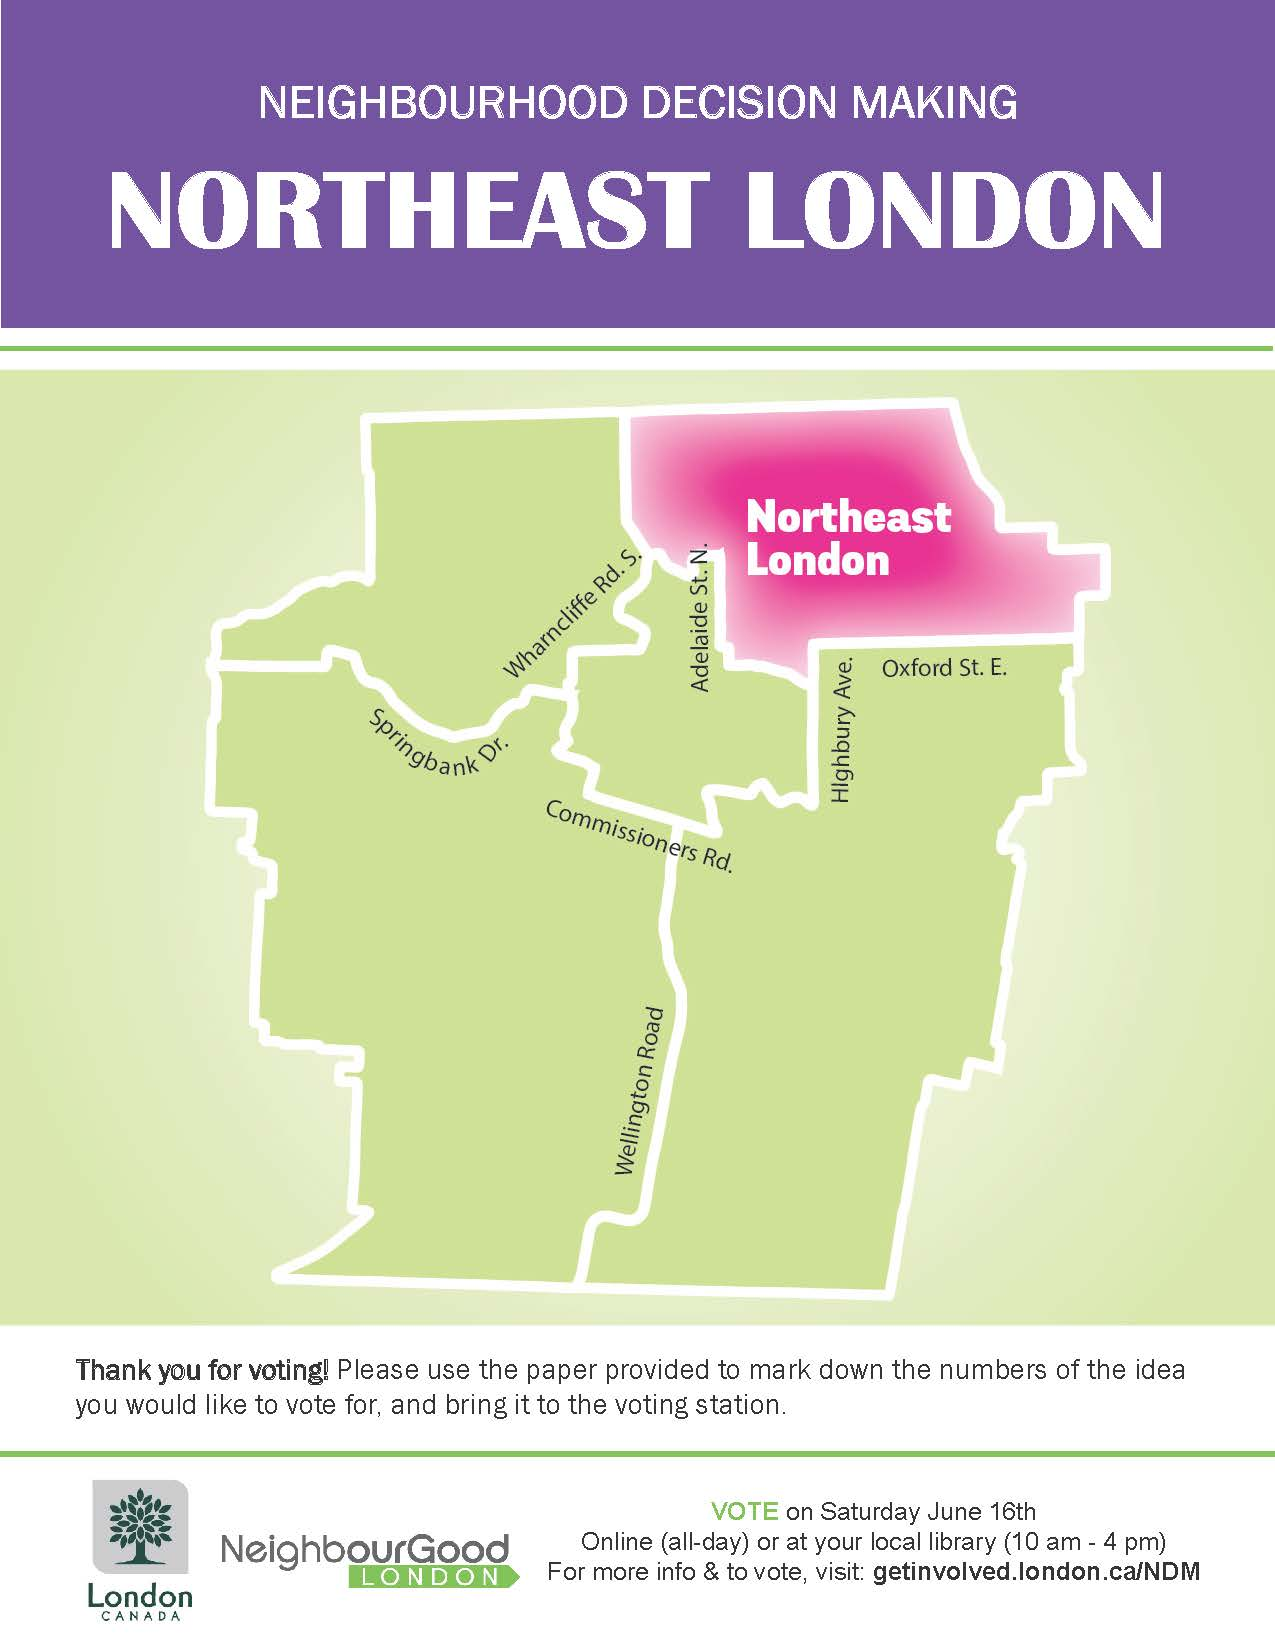 Map Of North East London.Northeast London Neighbourhood Decision Making Get Involved London